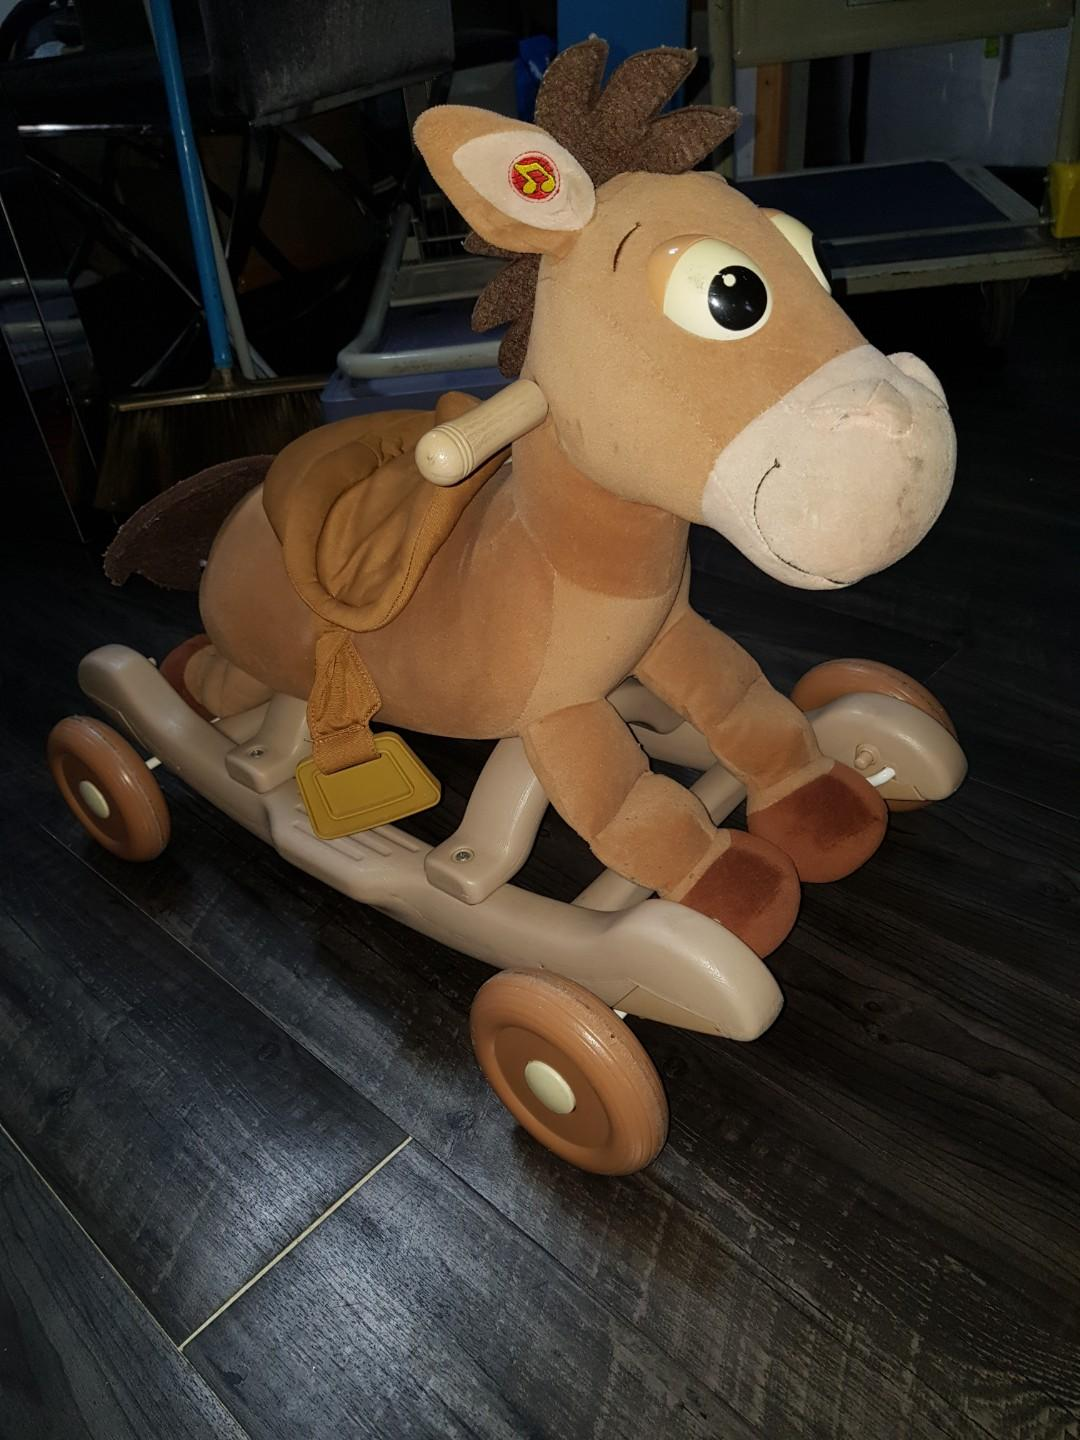 2-in-1 Wooden Rocking Horse, push horse